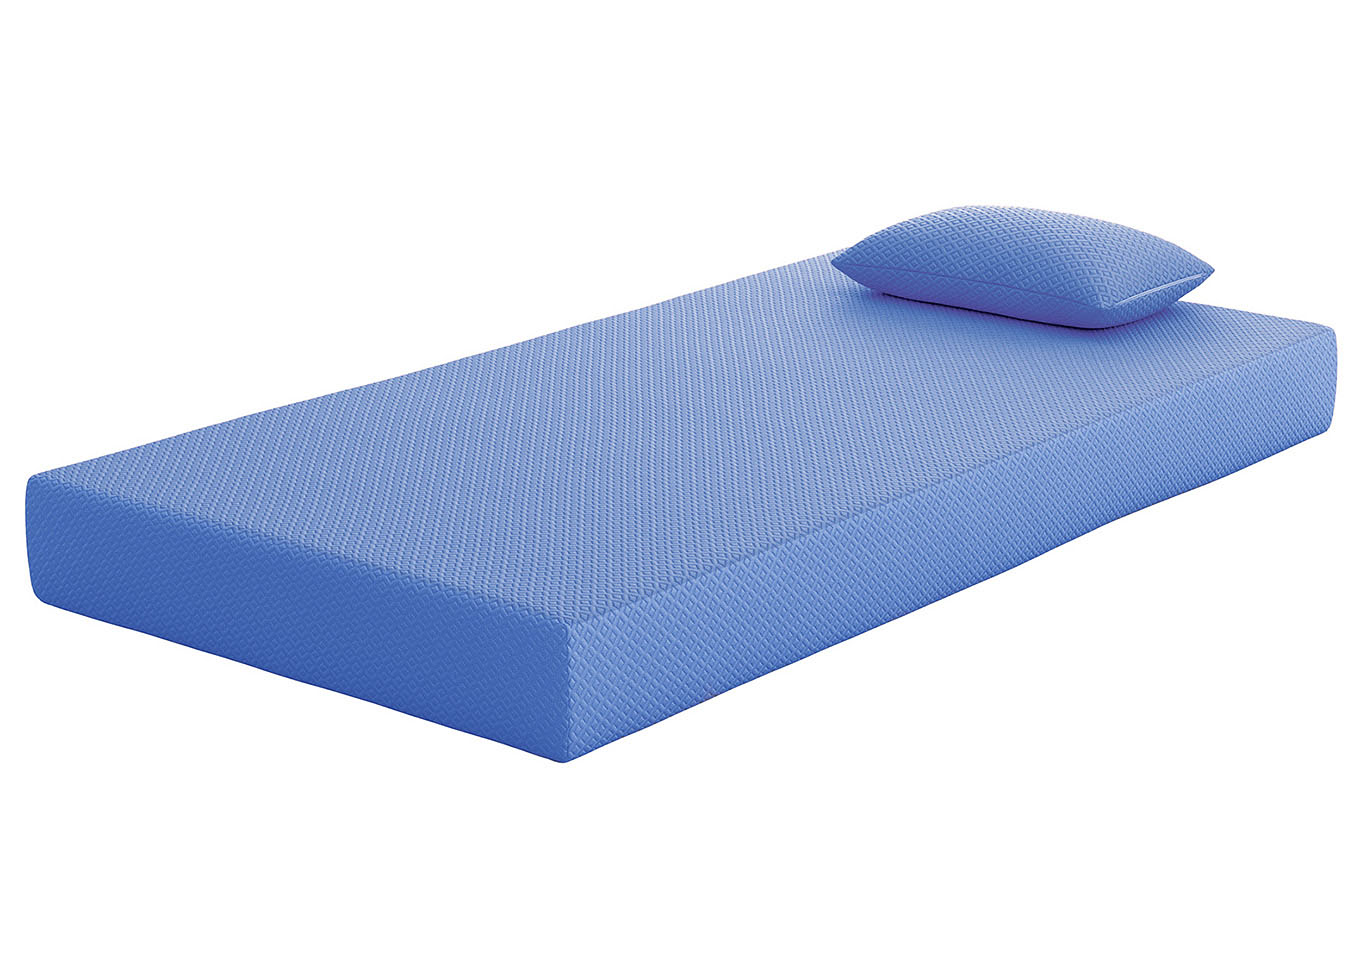 iKidz Blue Full Mattress and Pillow,Sierra Sleep by Ashley